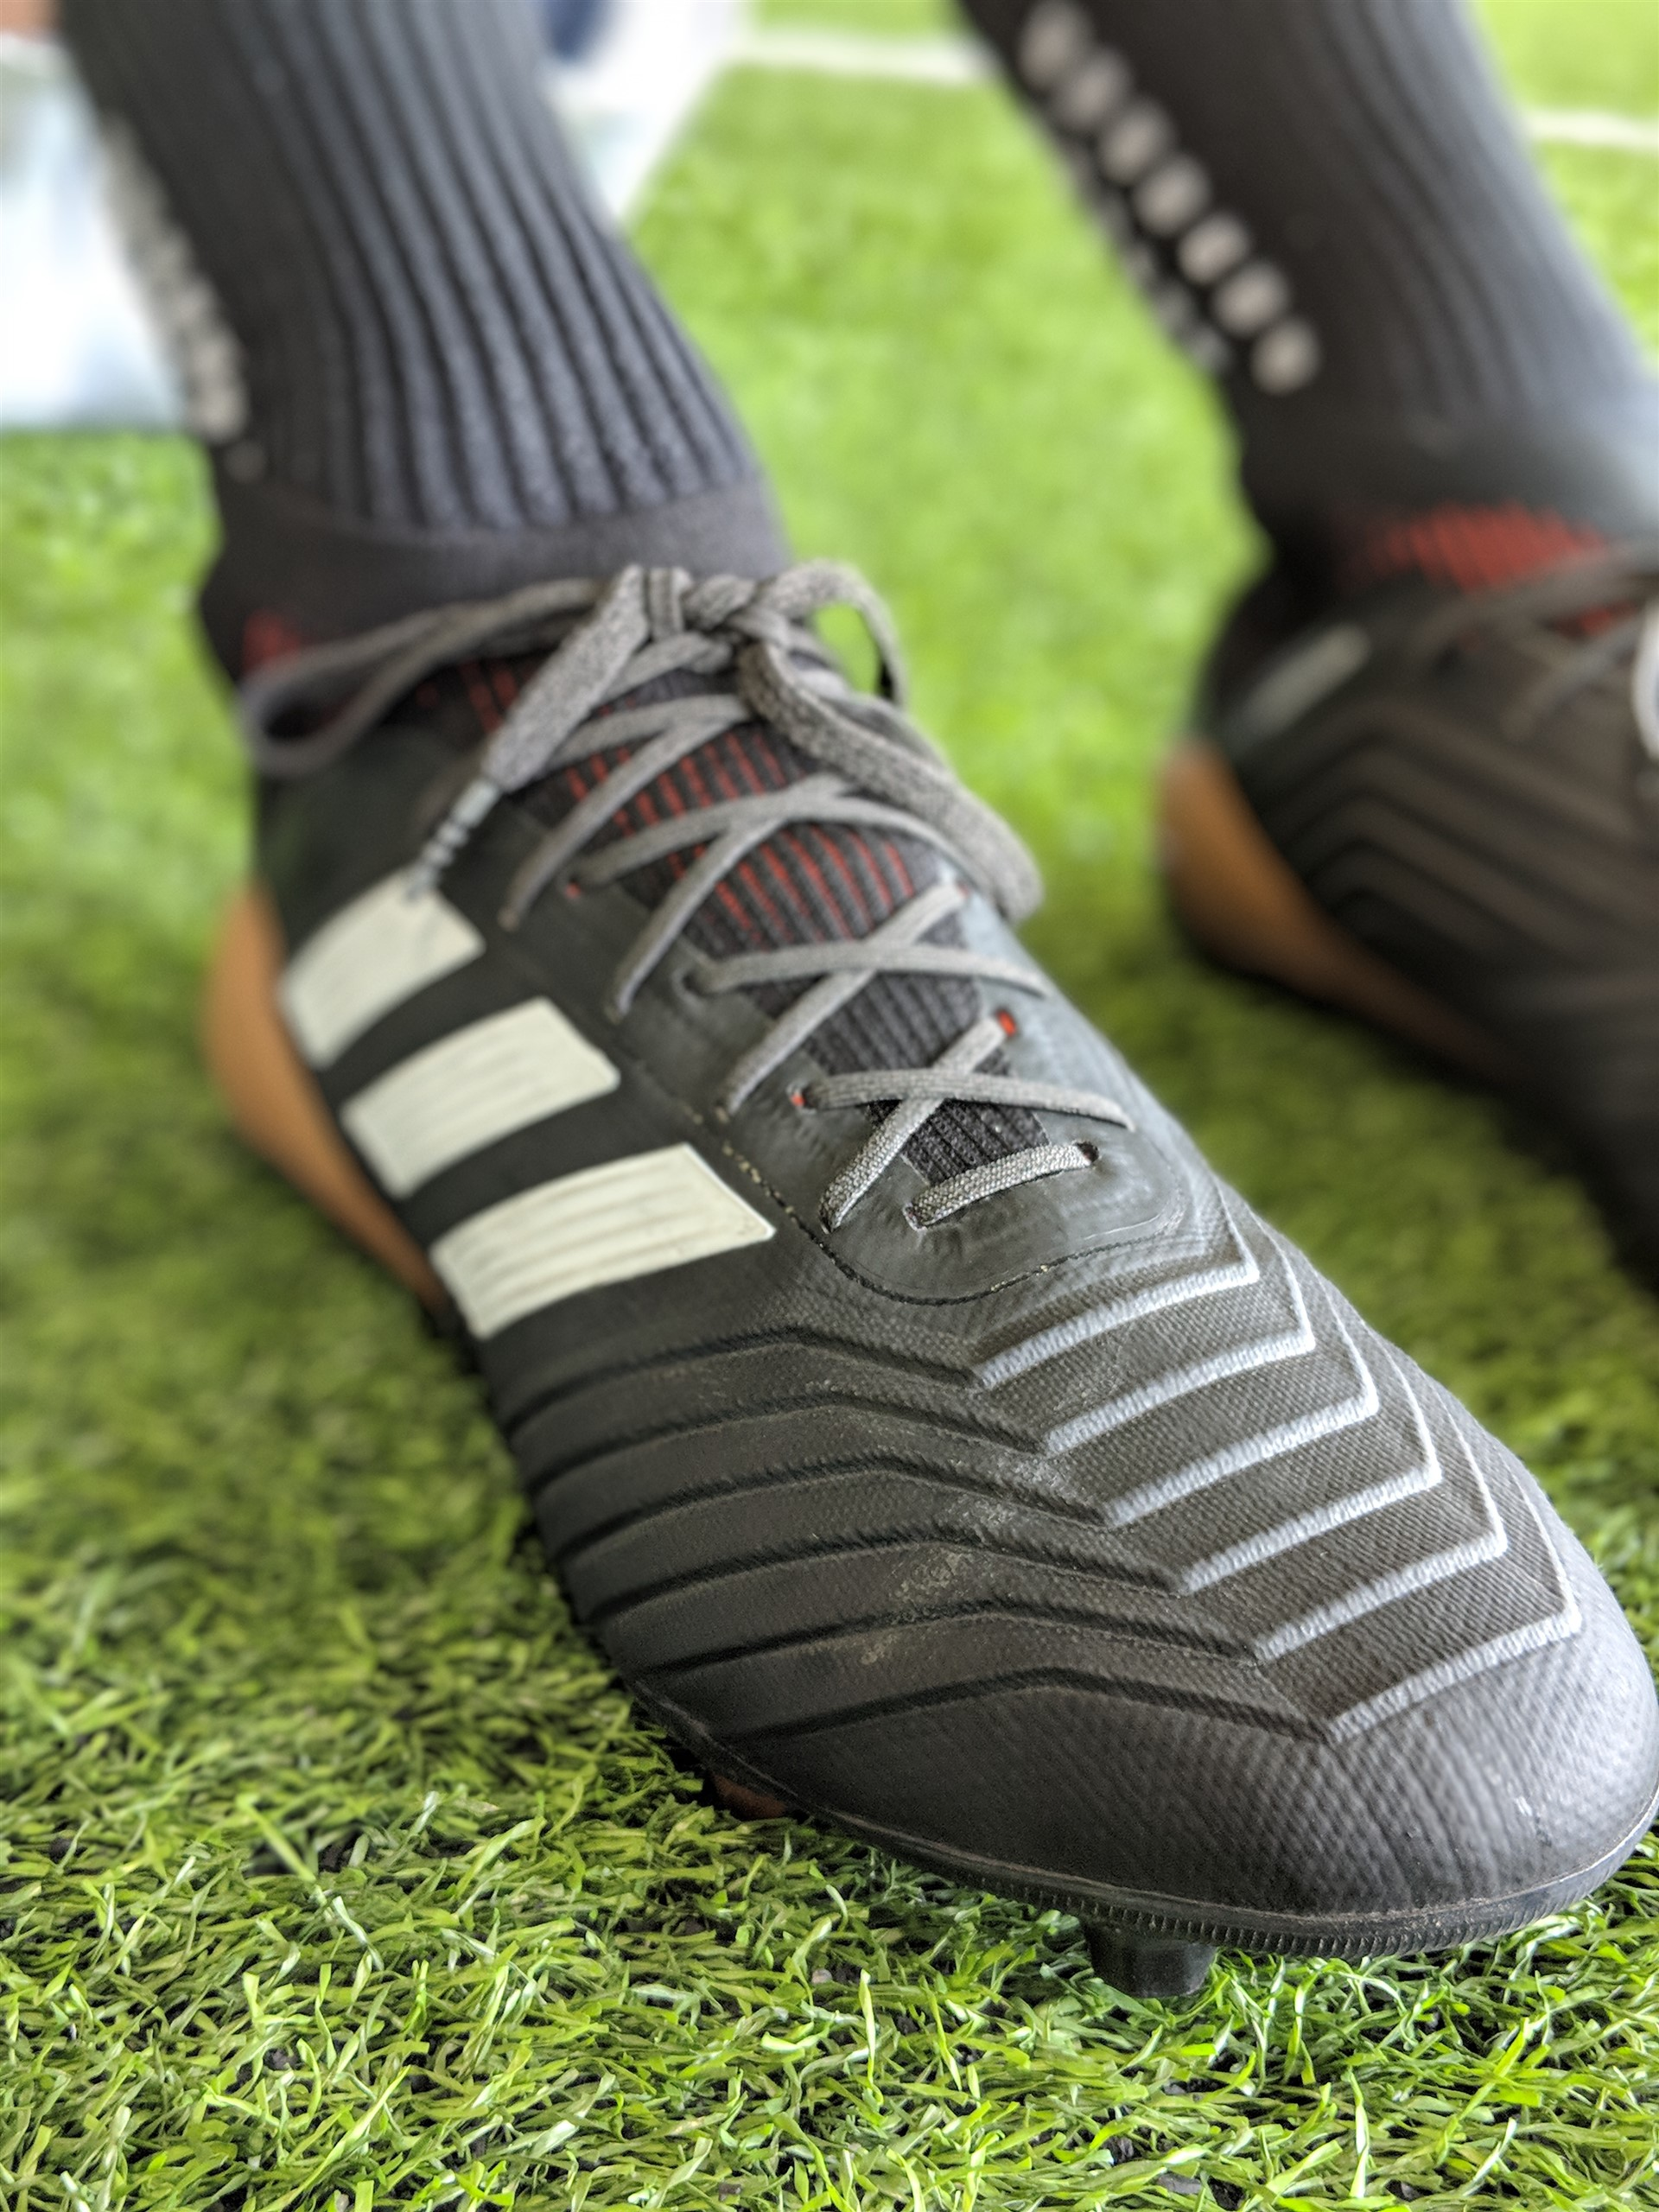 new product 7667f db462 Review adidas Predator 18.1 - BOOTHYPE